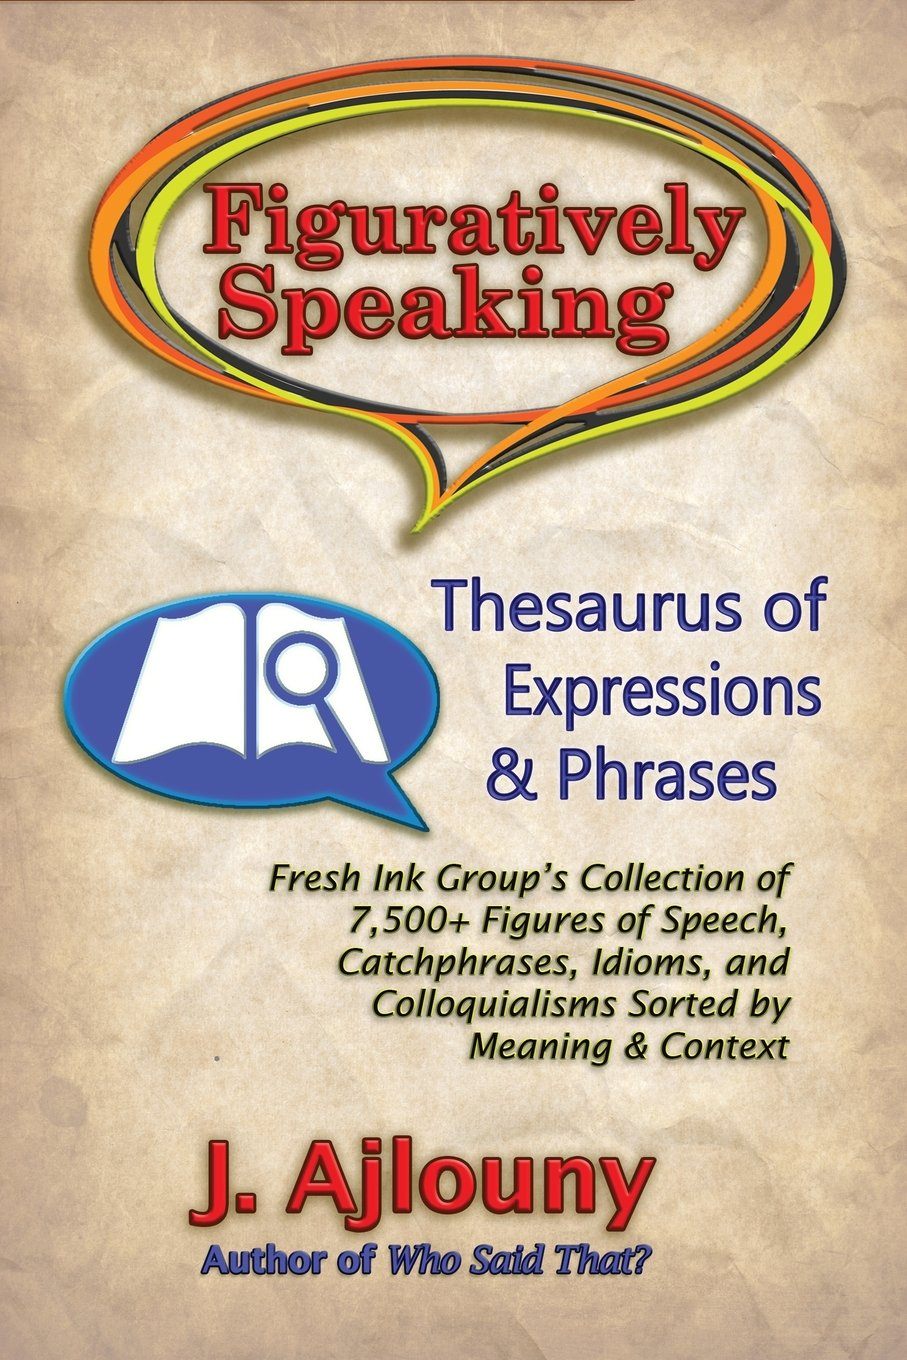 Figuratively Speaking: Thesaurus of Expressions & Phrases by The Fresh Ink Group, LLC